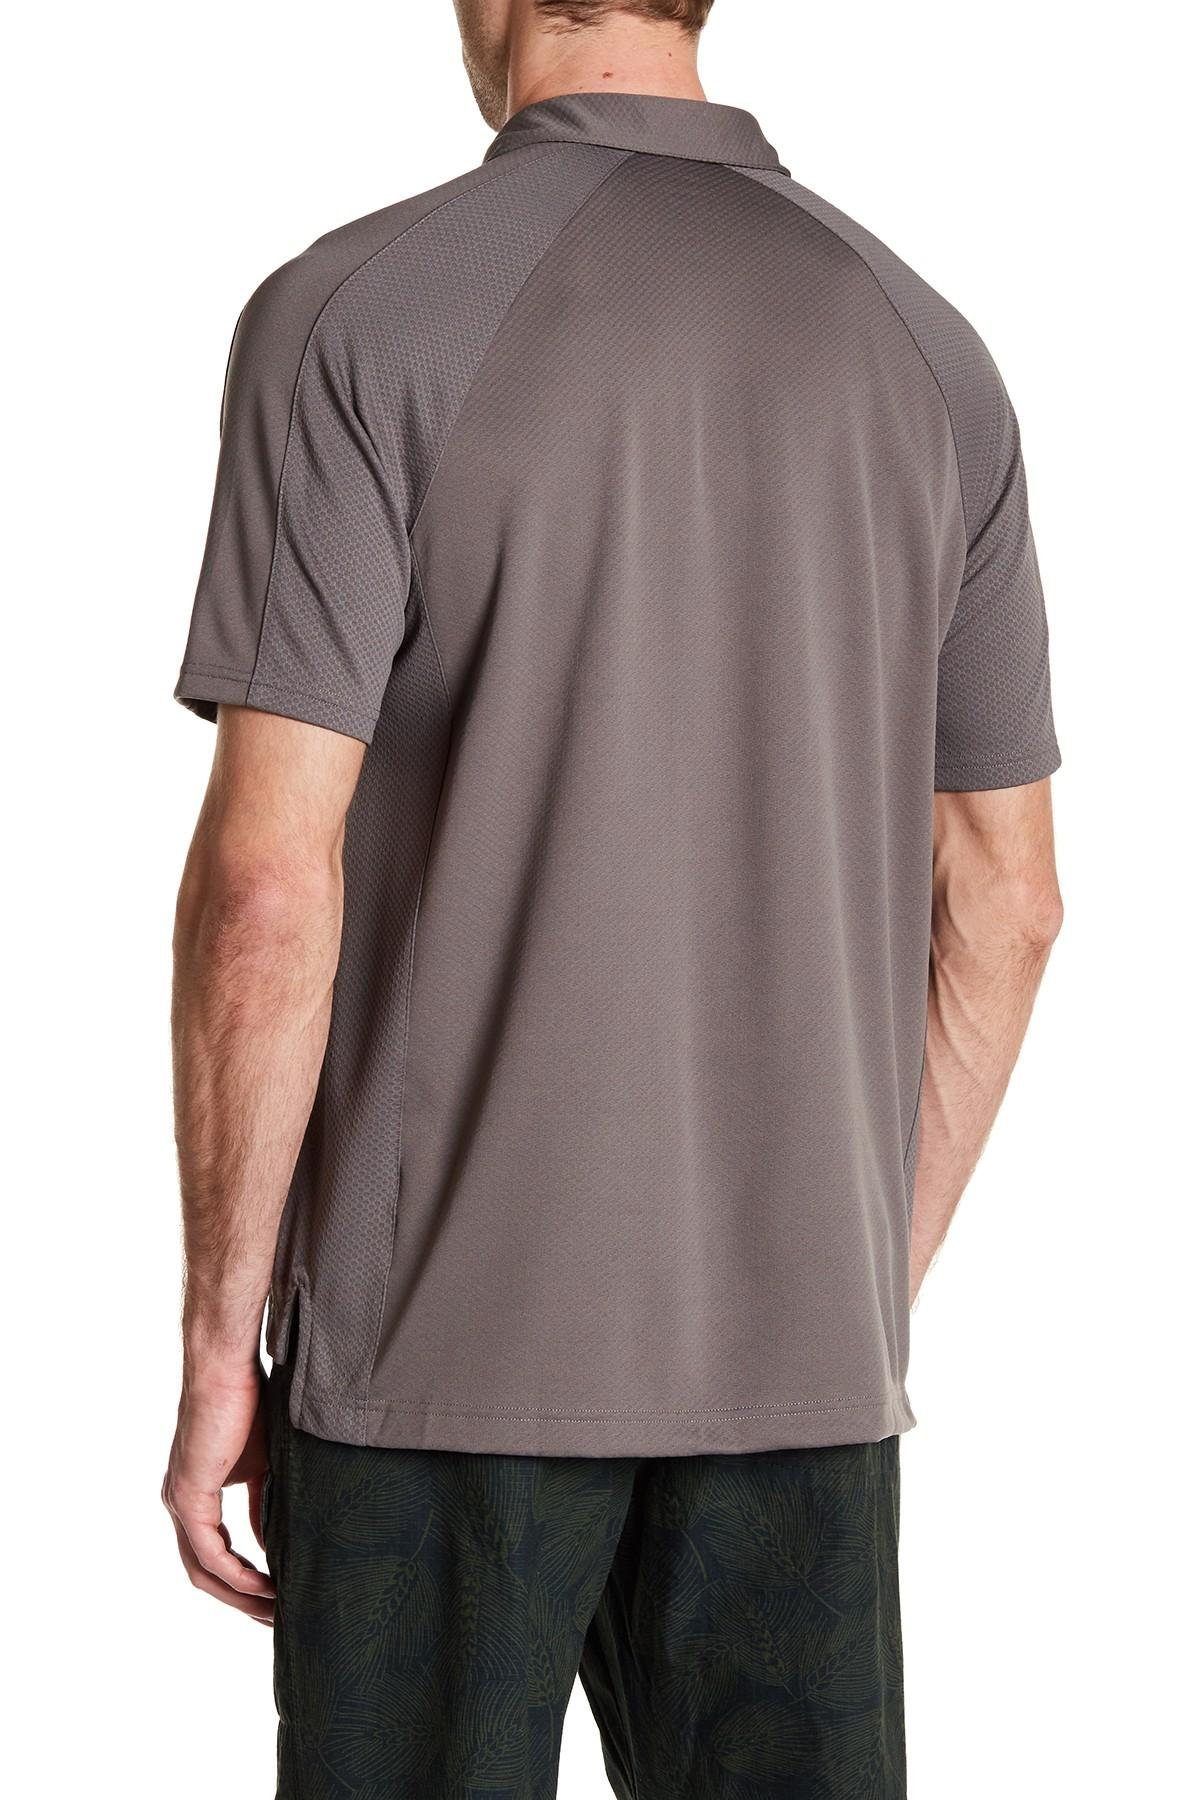 Lyst lands 39 end active pique polo in gray for men for Lands end logo shirts